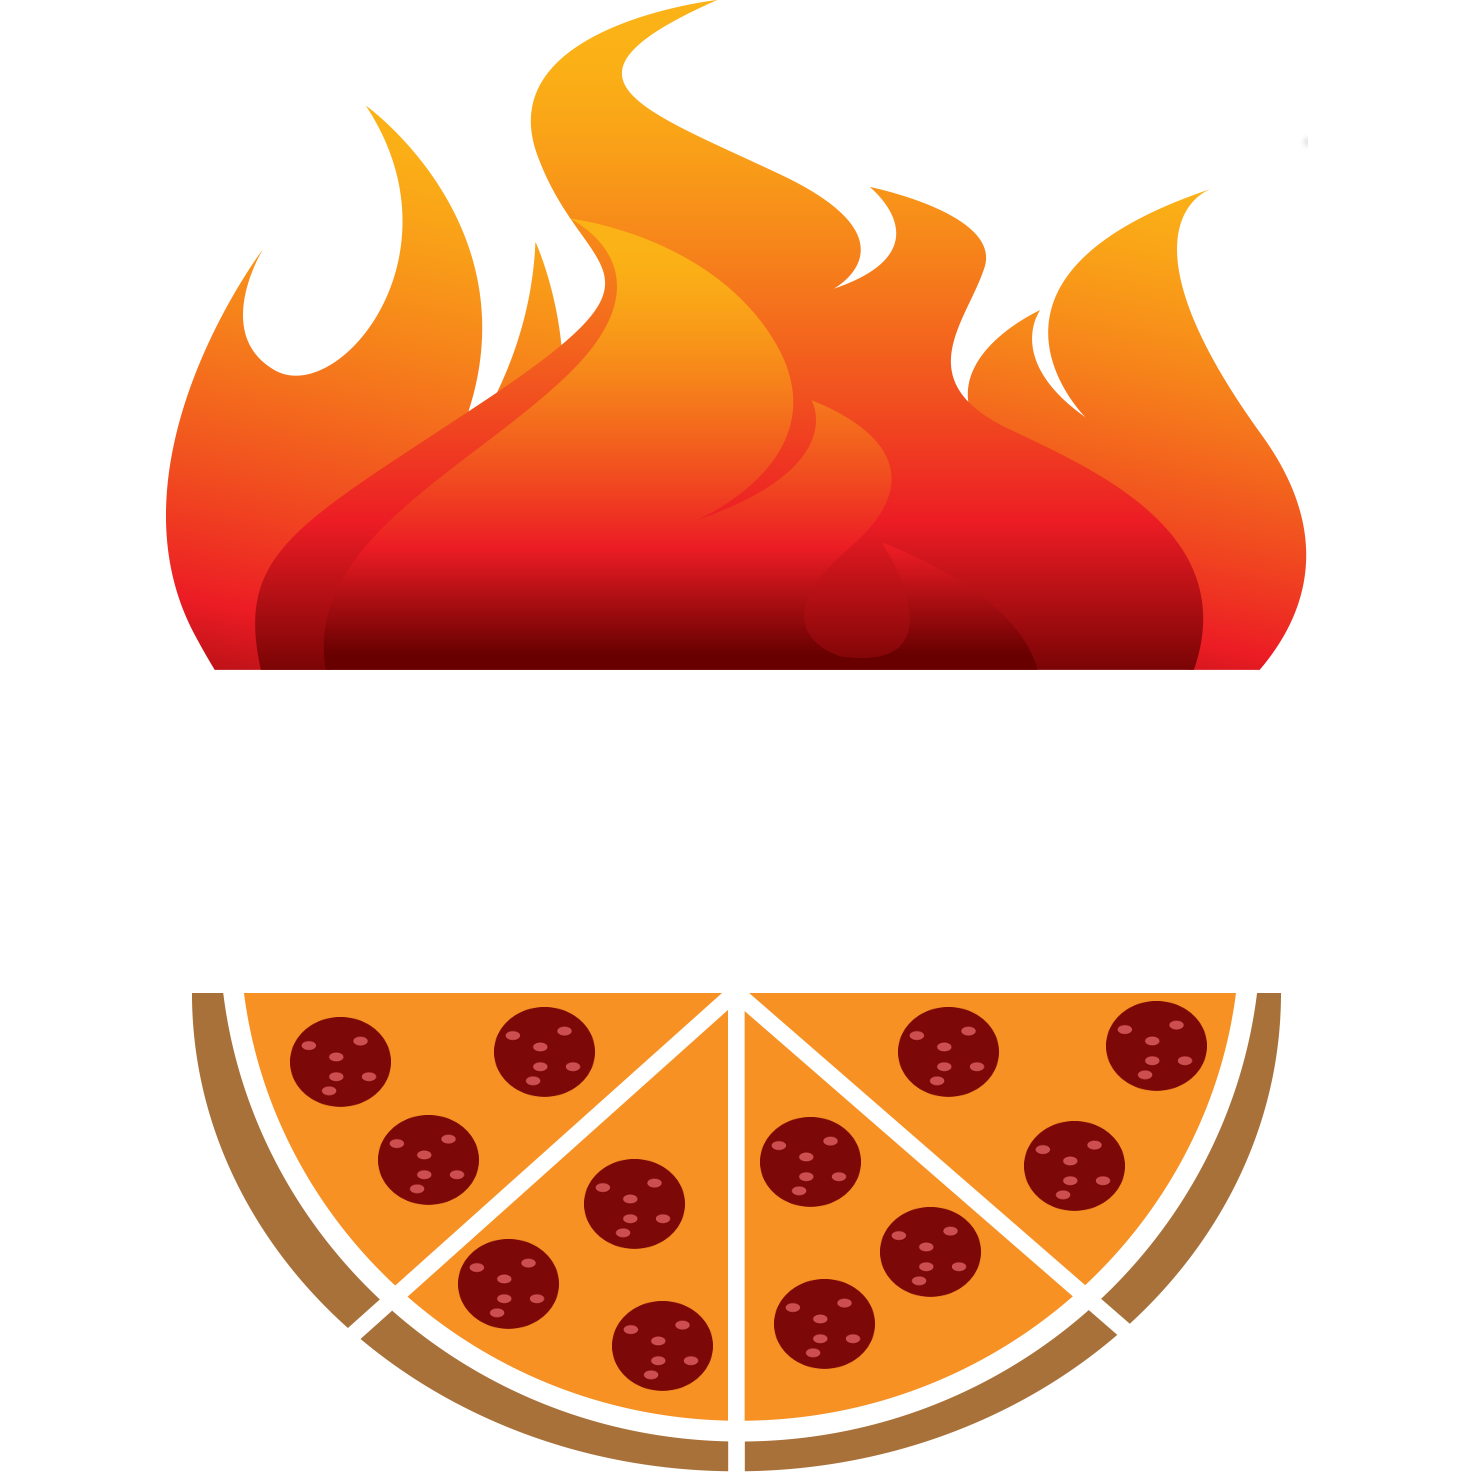 jpg freeuse stock Menu zander s woodfired. Appetizers clipart